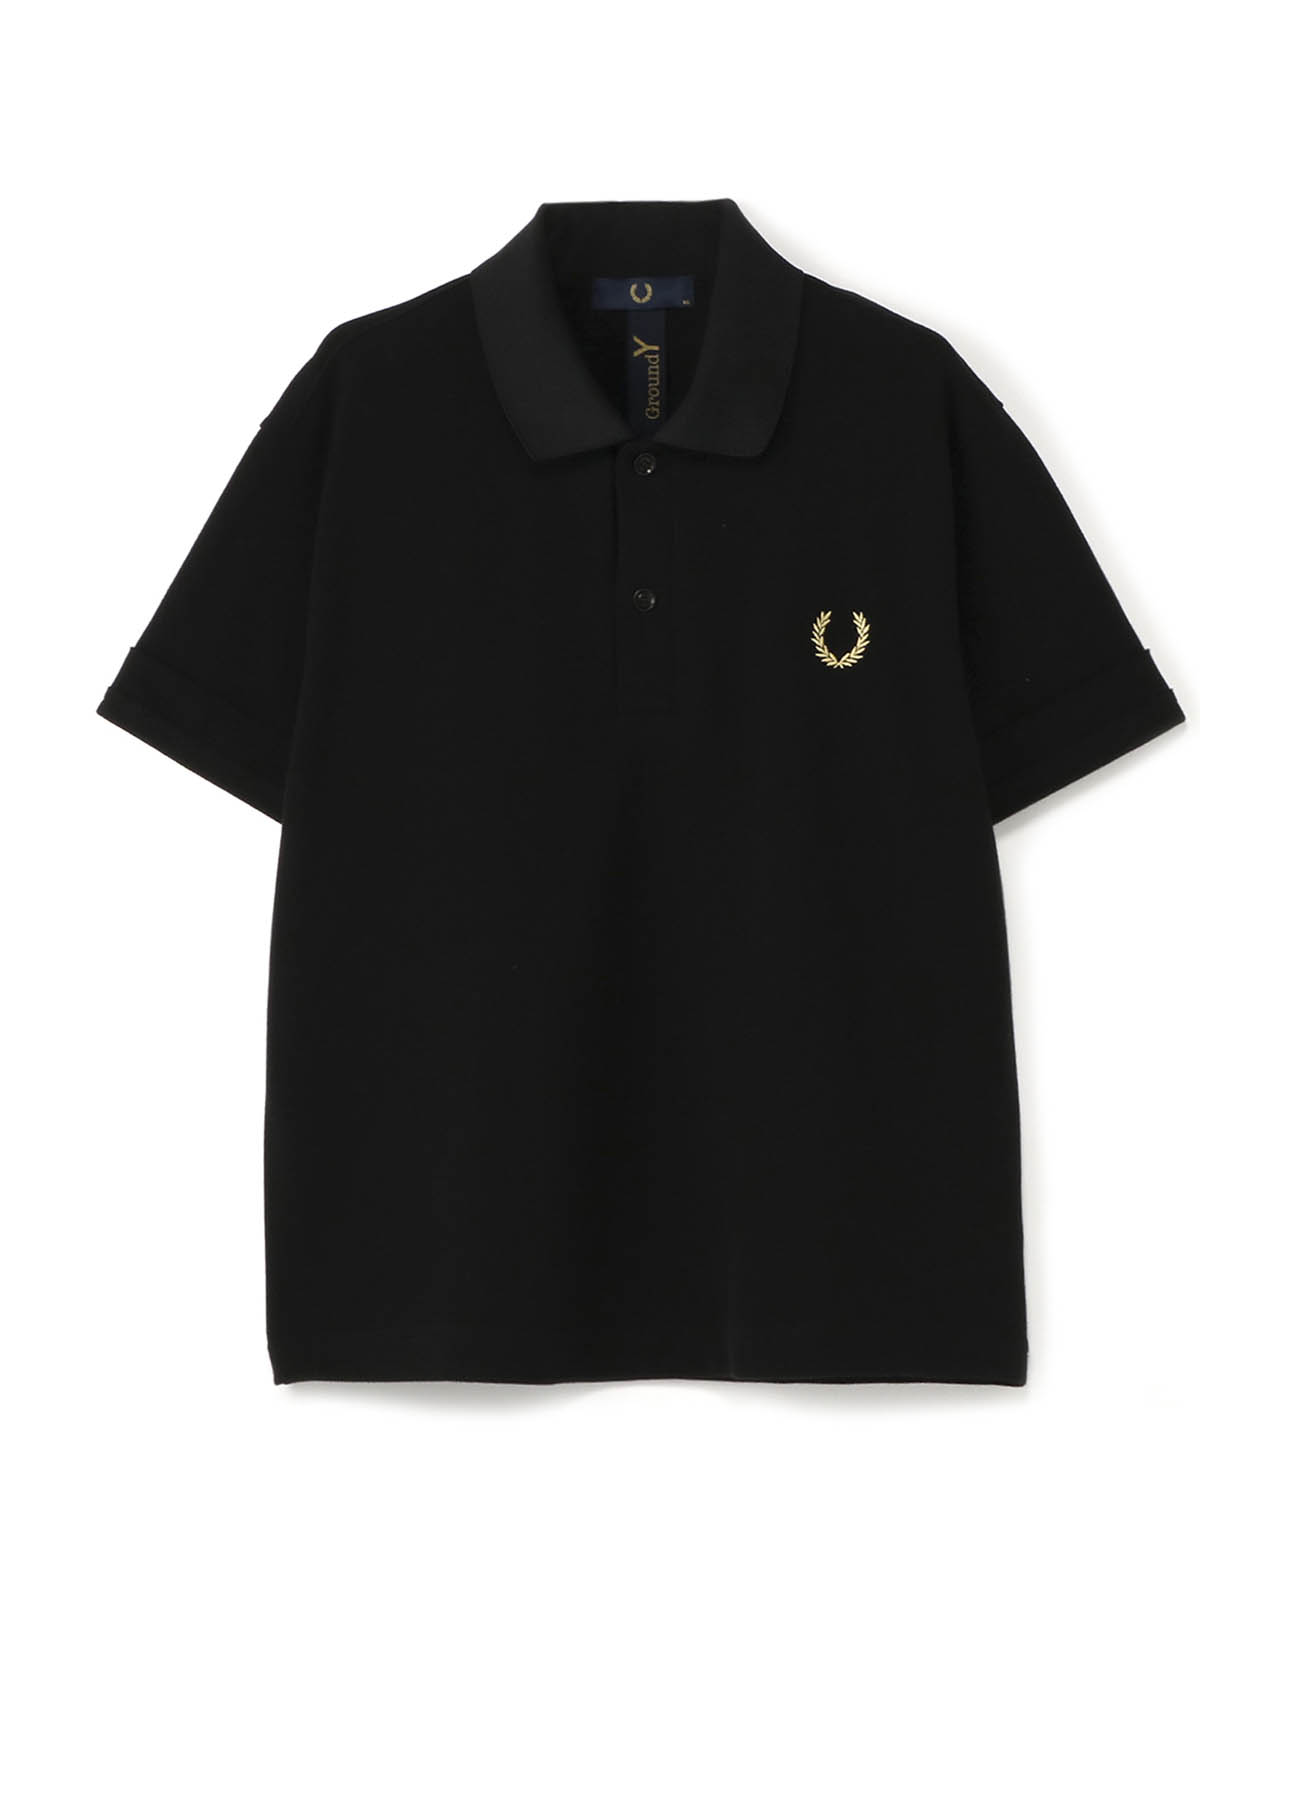 FRED PERRY collaboration Kanako Short Polo